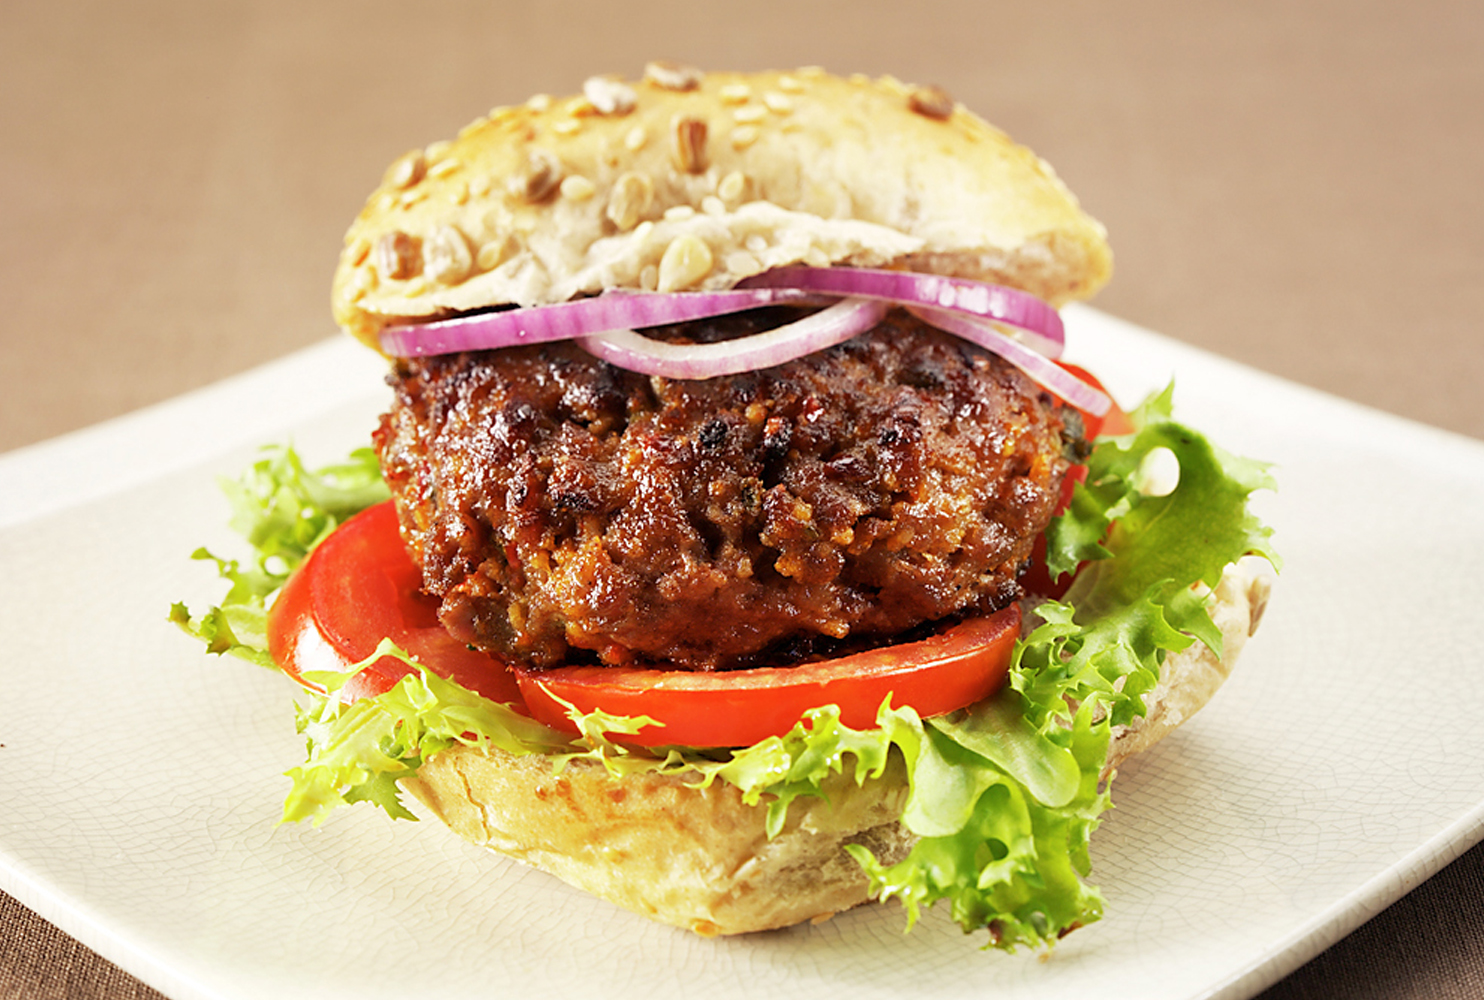 DALESMAN BEEF & ONION BURGER SEASONING